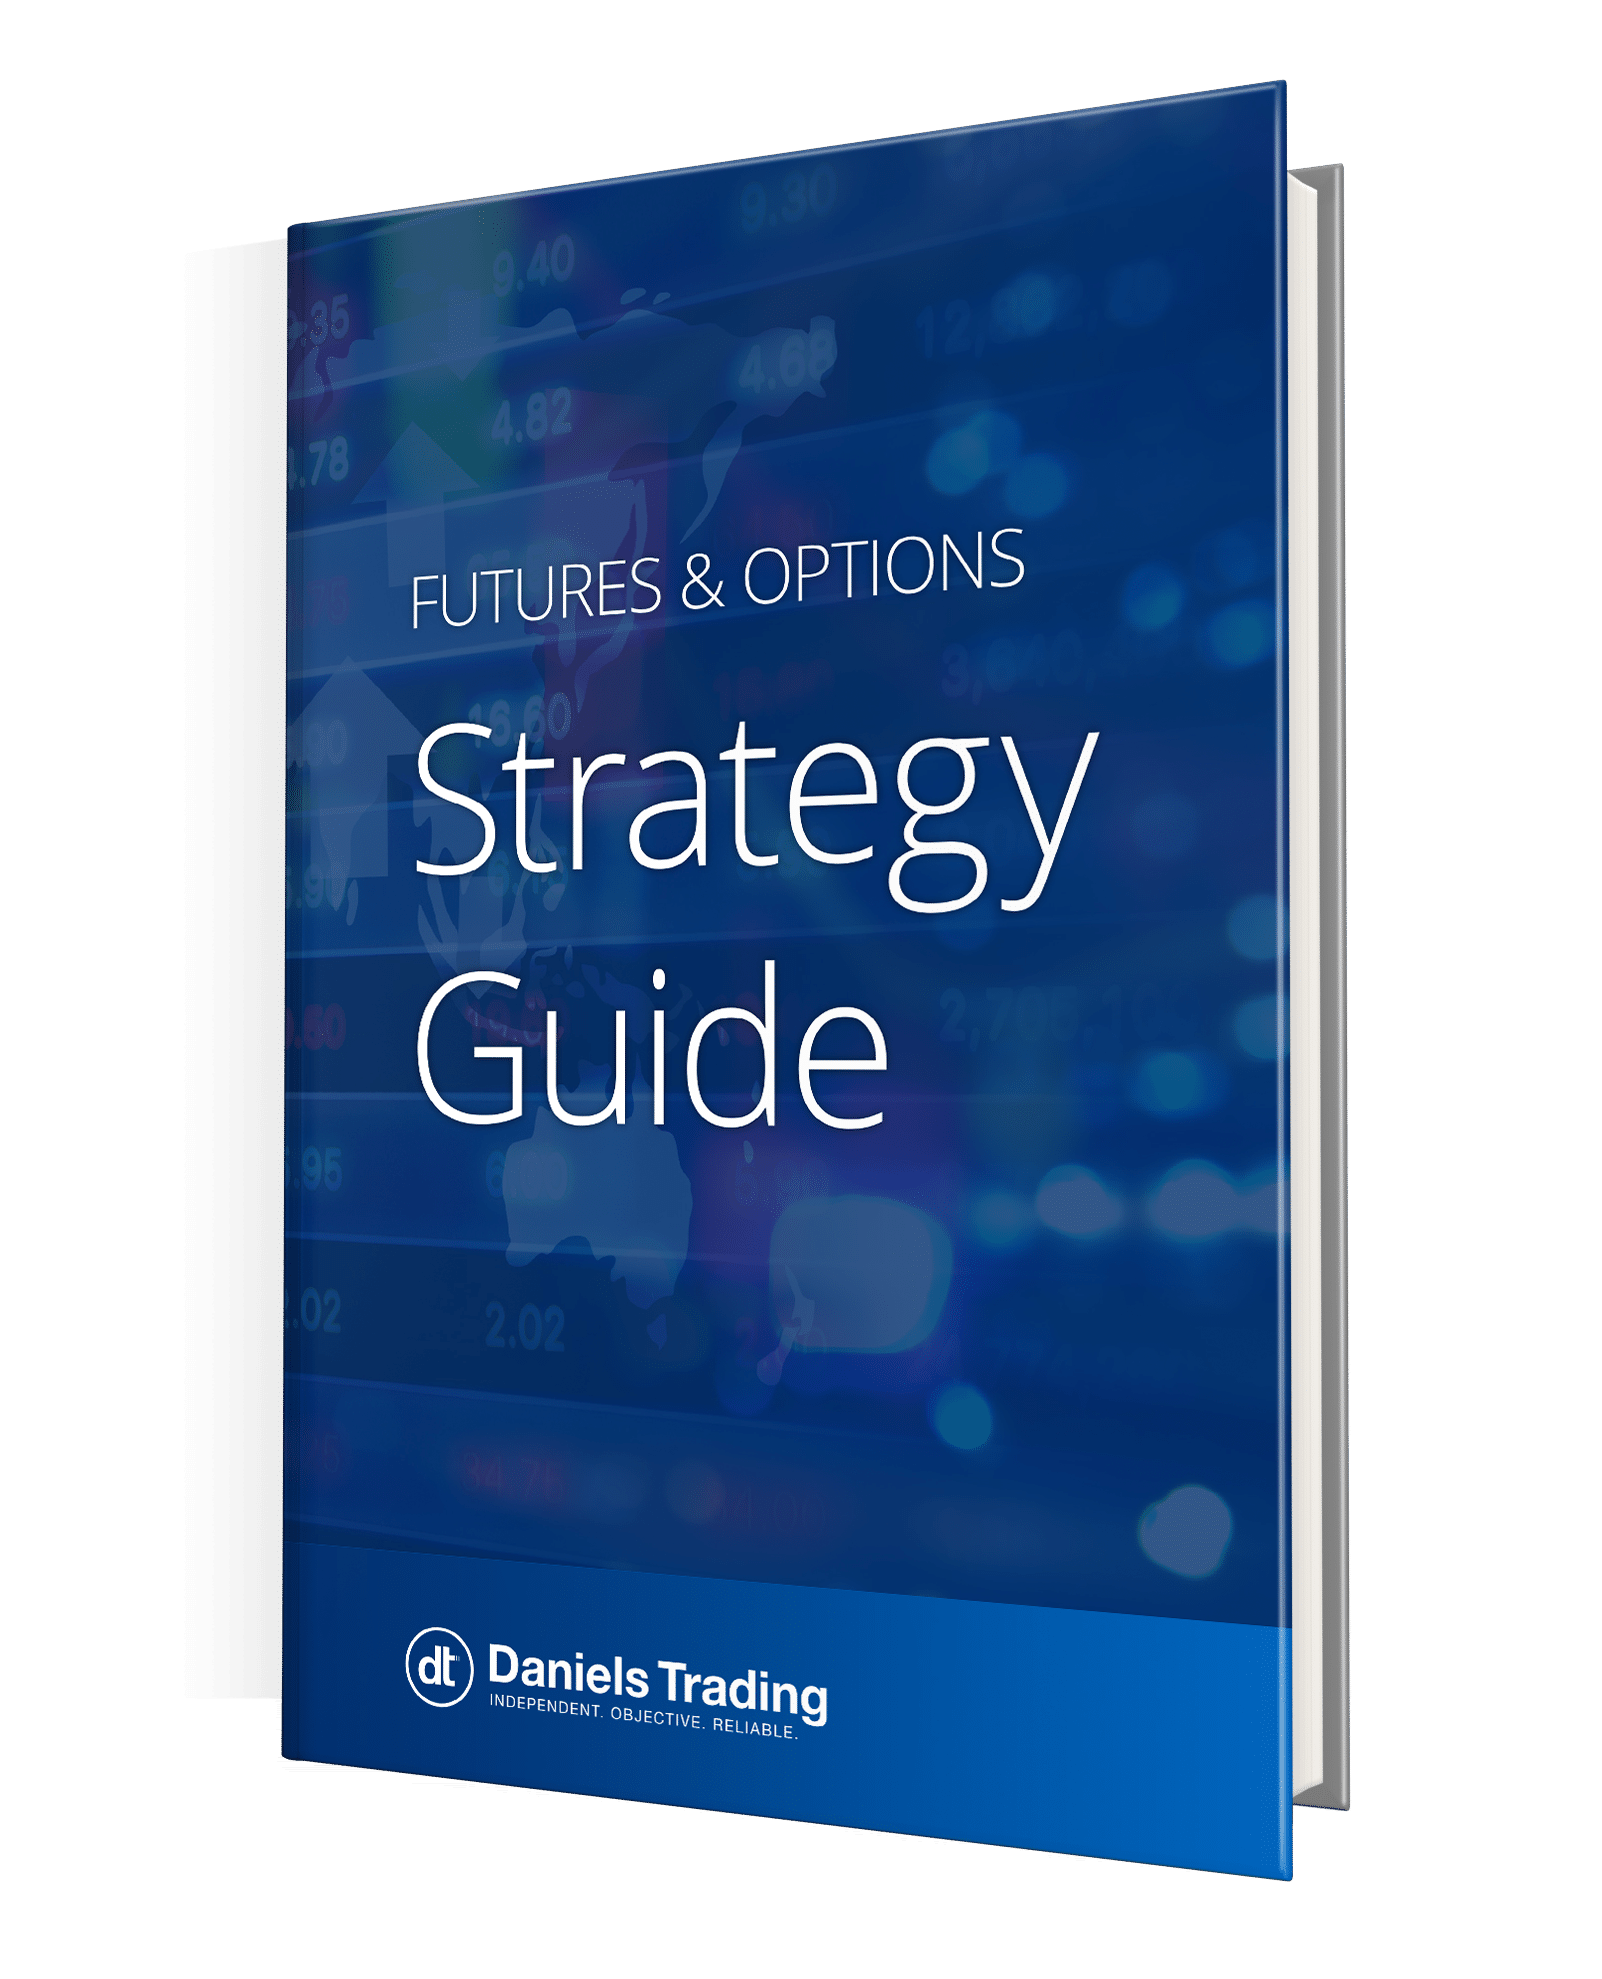 Future and options trading strategies book